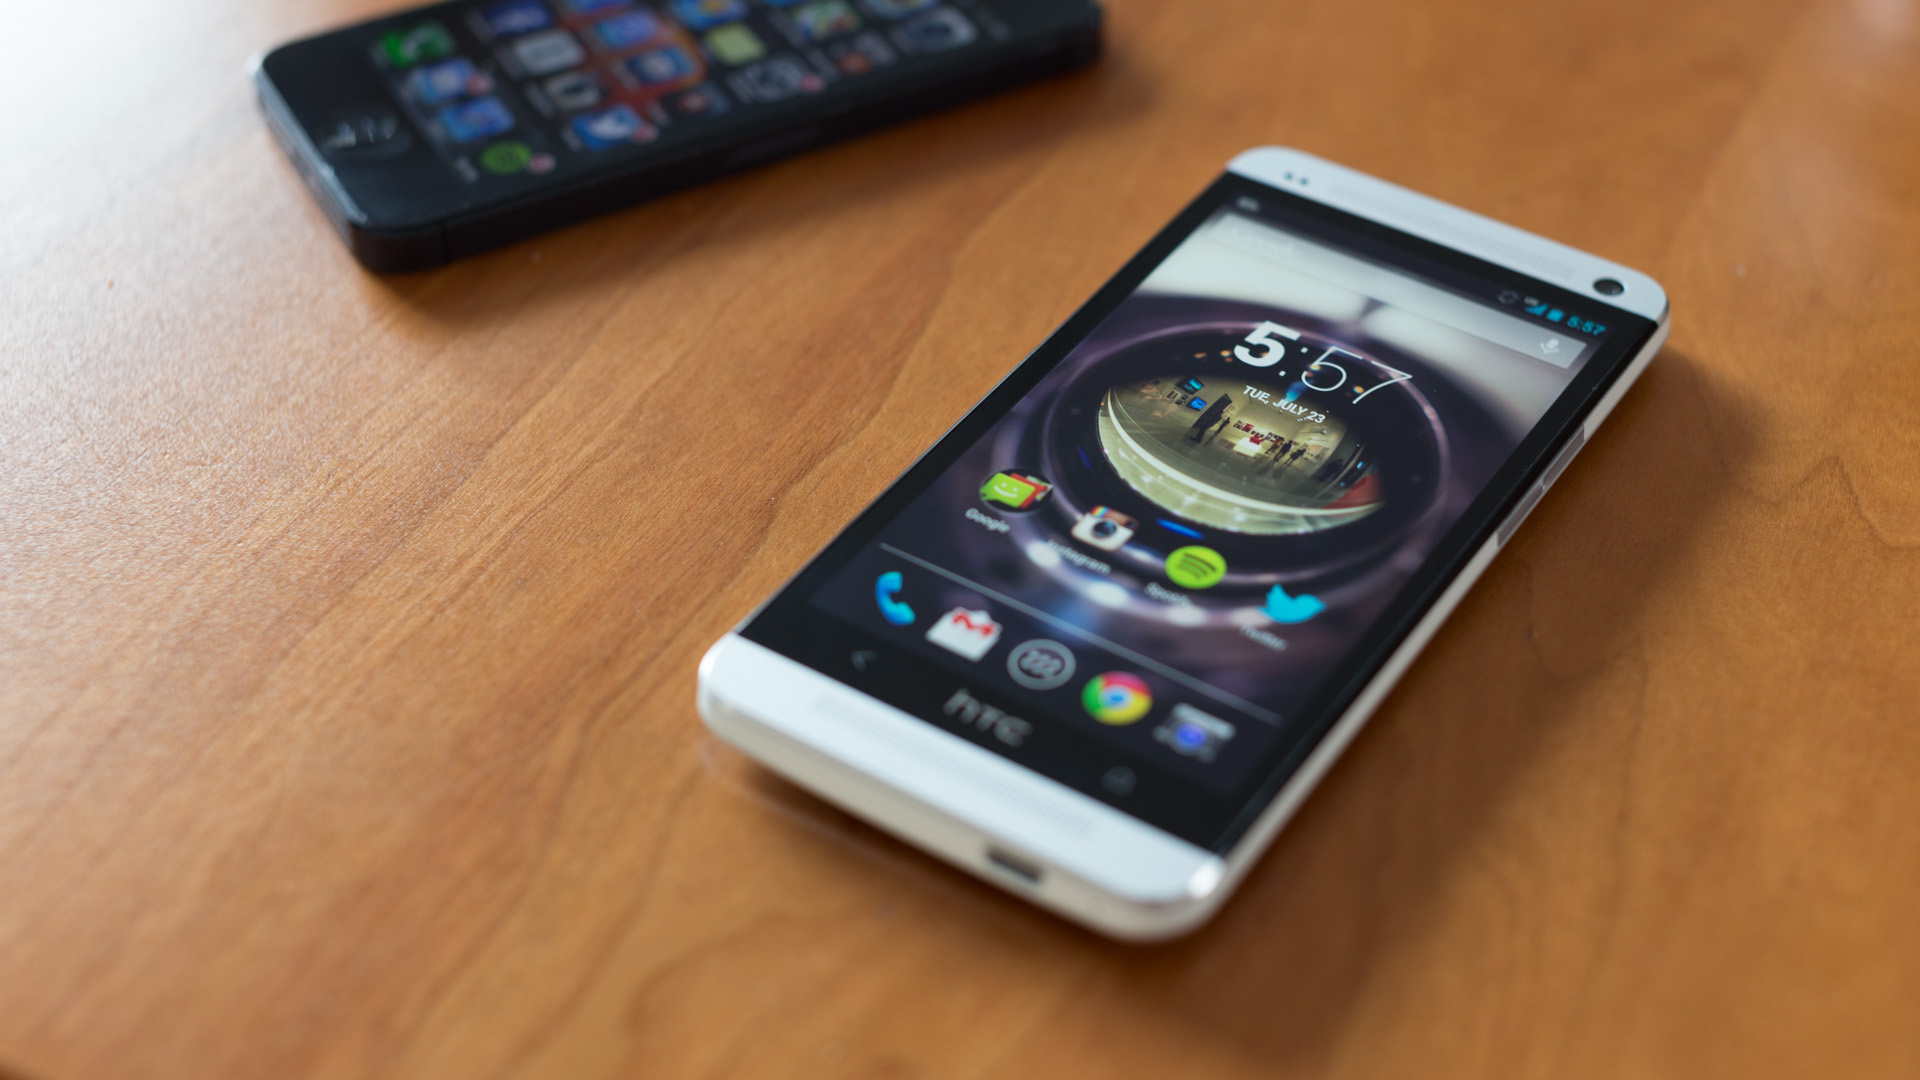 Google play edition htc ones could get android 5. 0 lollipop on monday.